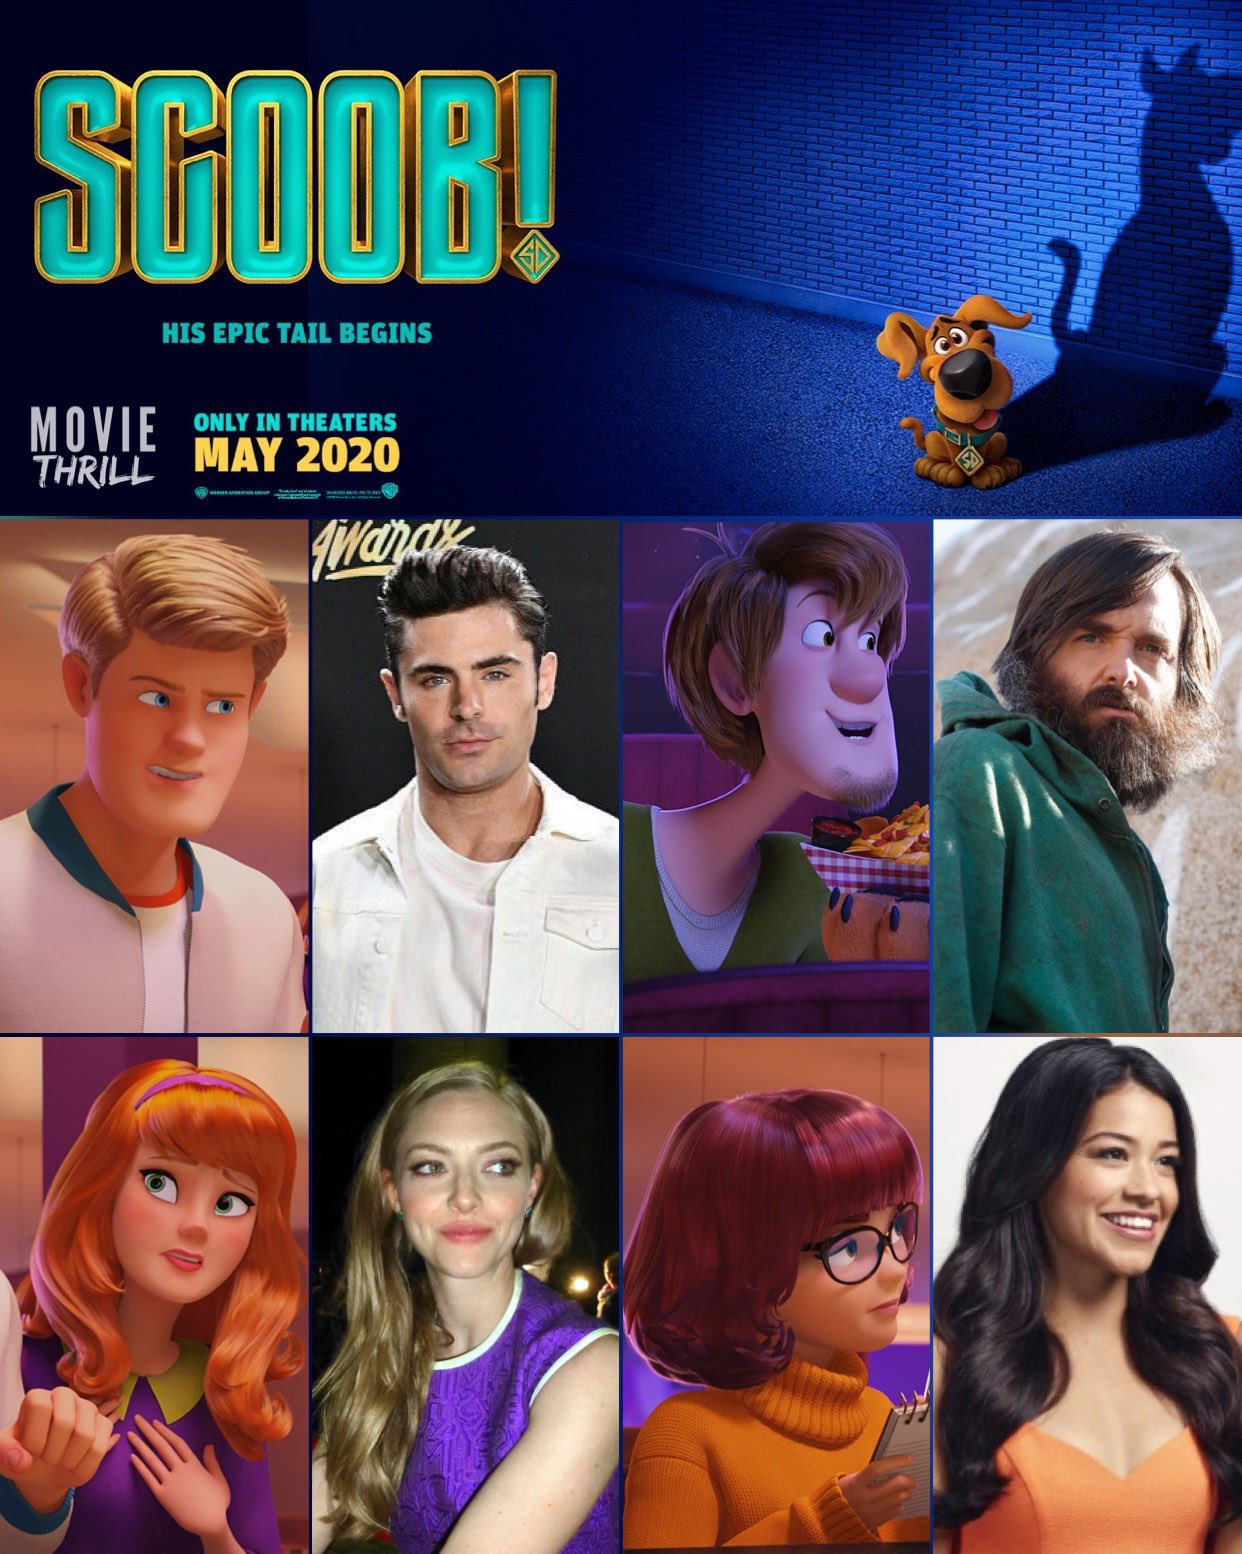 use me - The Reboot of Scooby-Doo in 3D is Coming! - Images, Trailer and Debut Details Revealed